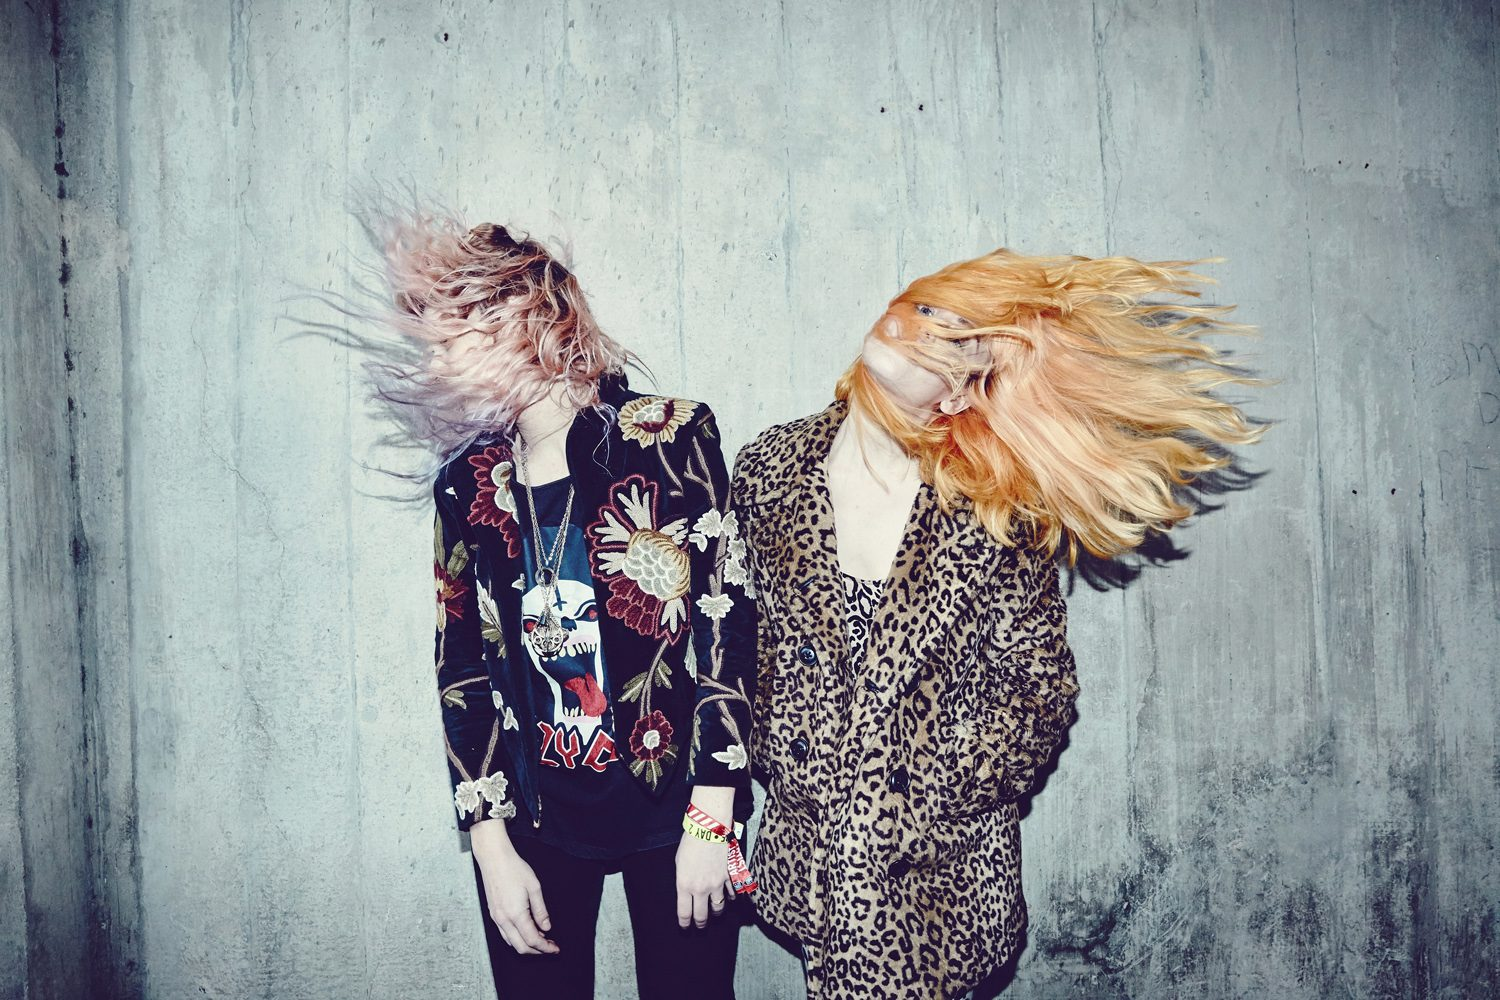 """Deap Vally Shares Edgy New Single """"I Like Crime"""" Featuring Jennie Vee of Eagles of Death Metal"""